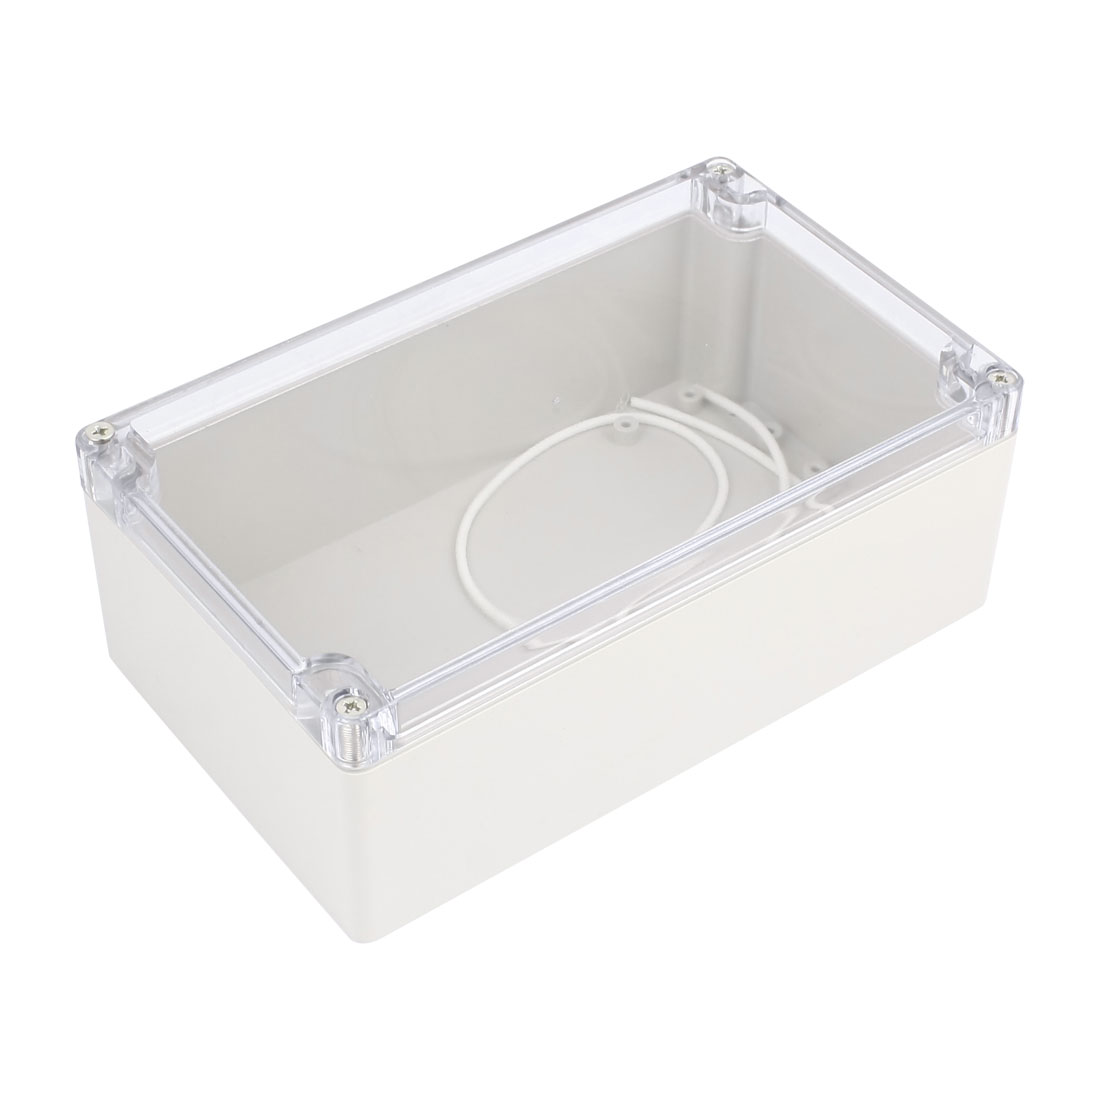 Clear Waterproof Cable Connect Electric Switch Junction Box 195 x 111 x 74mm